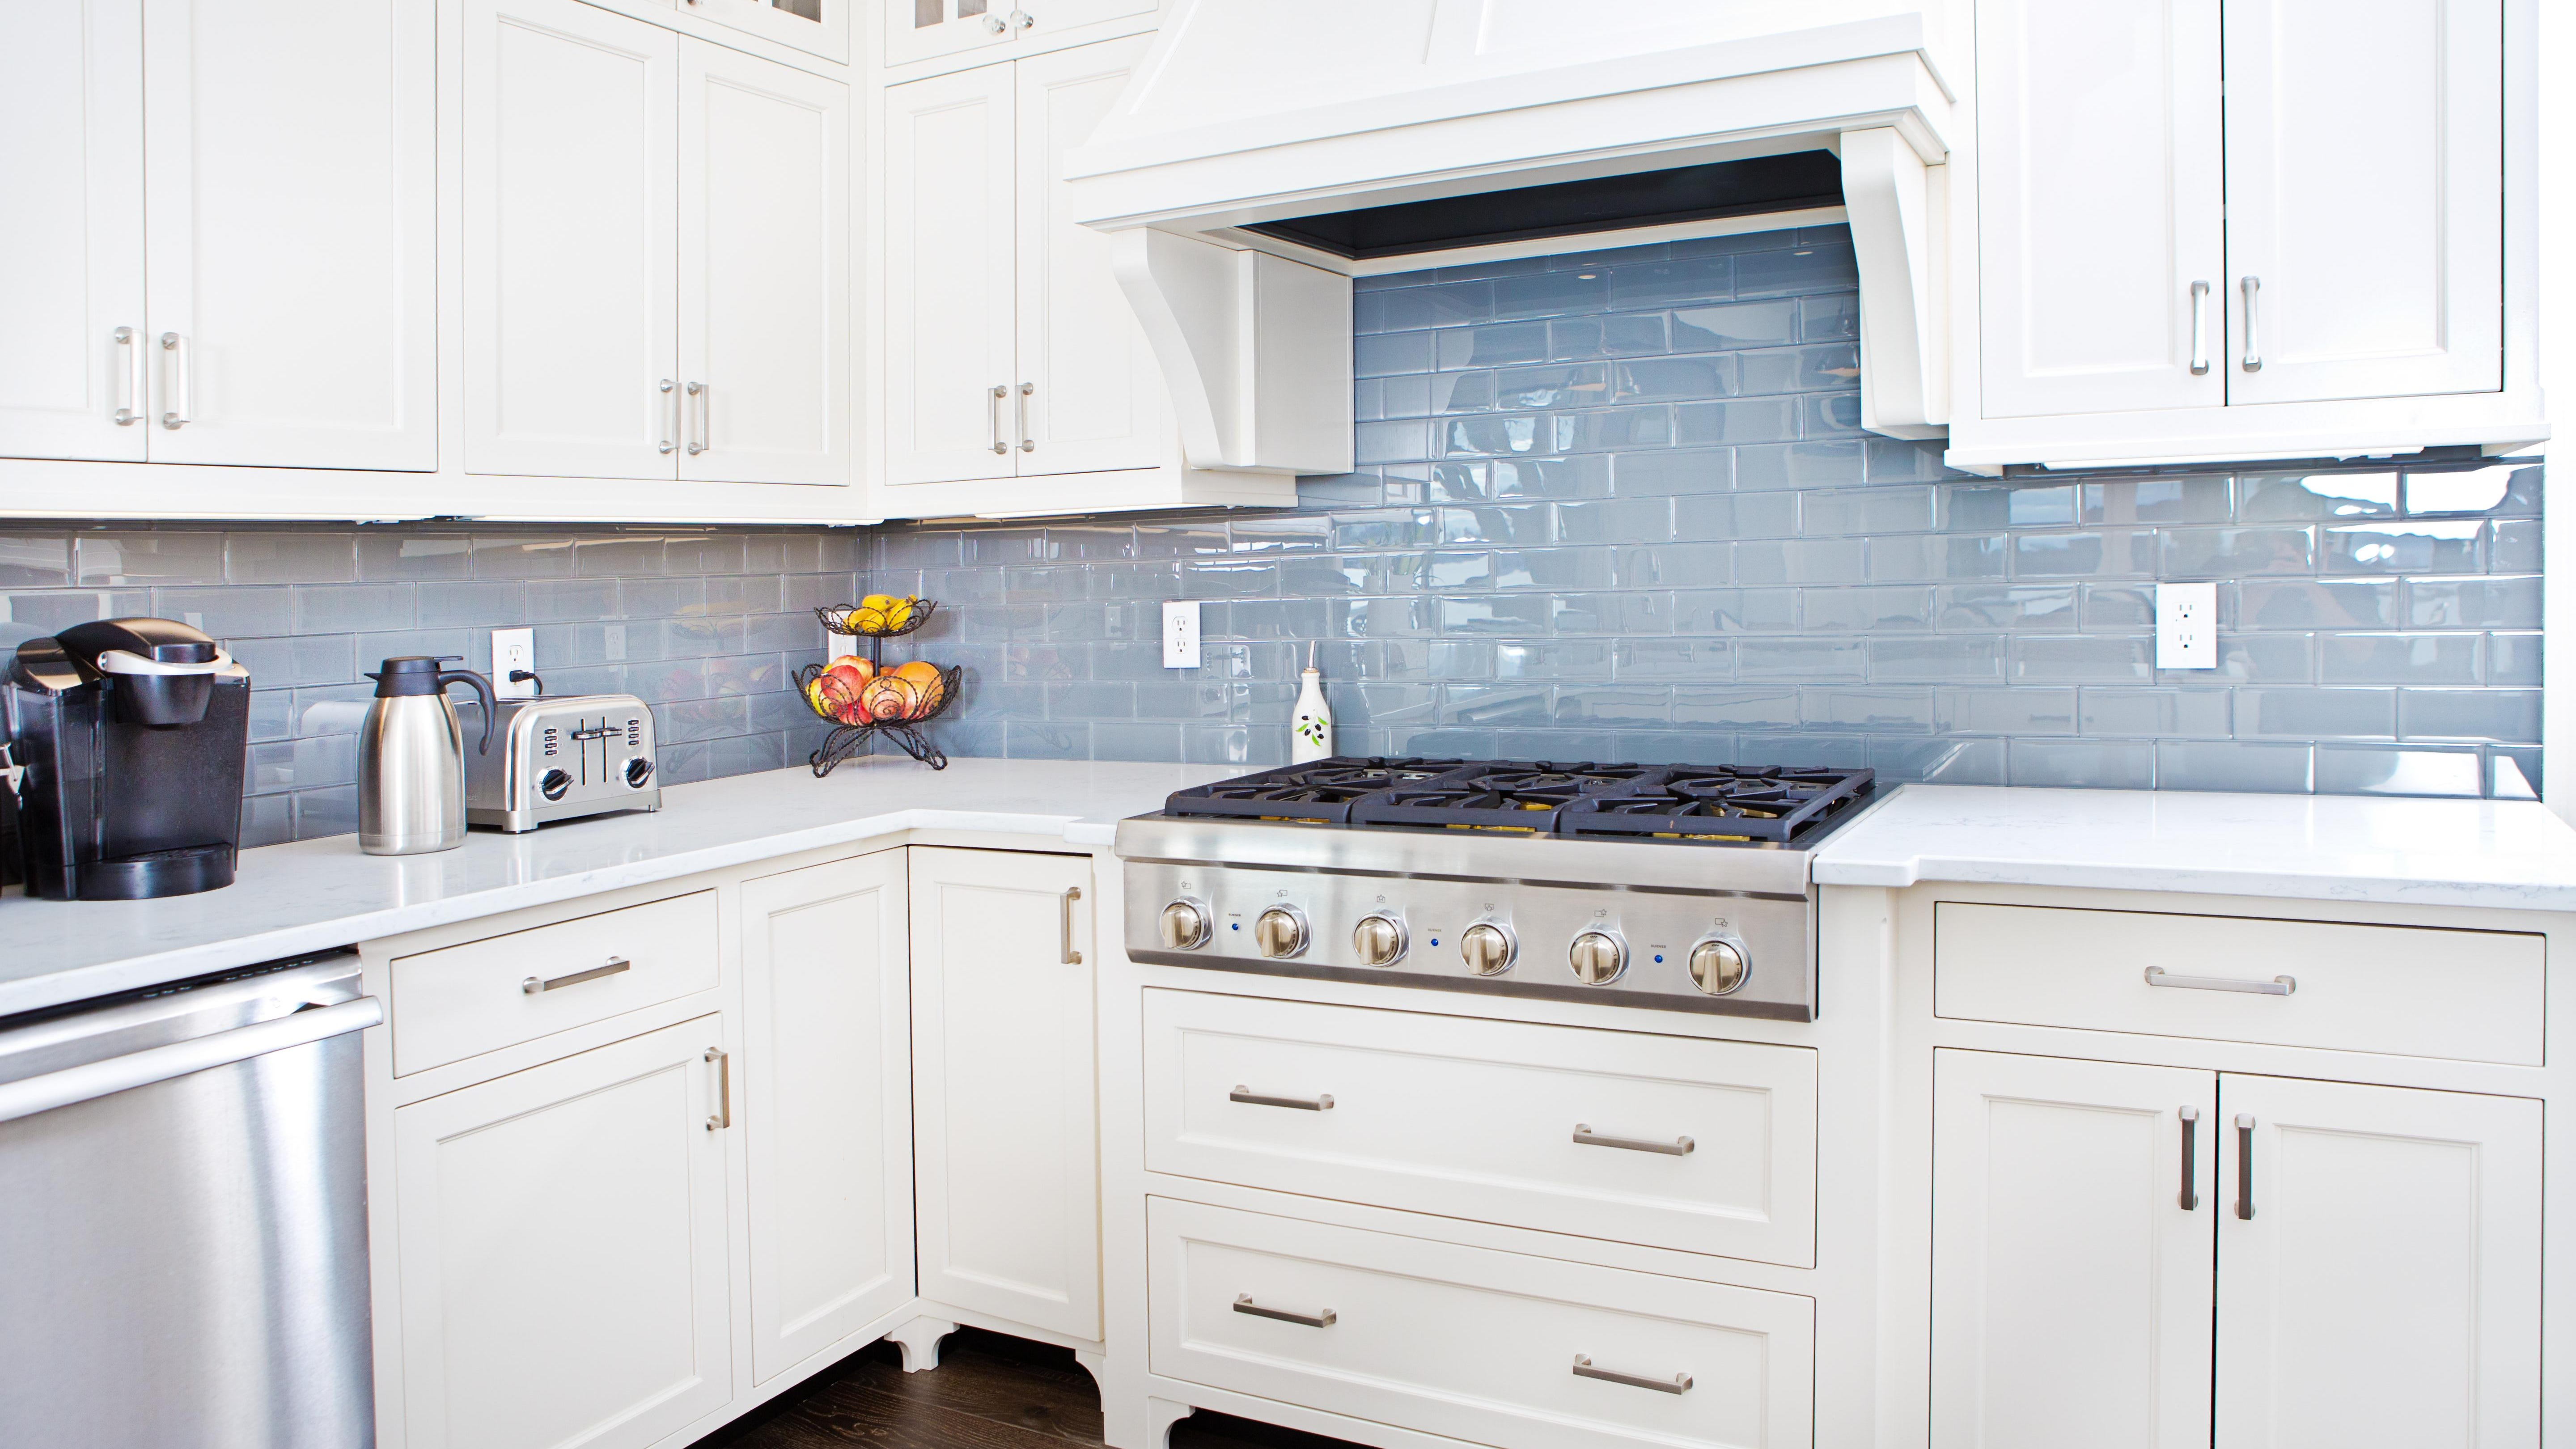 How To Revive Old Kitchen Cabinets On A Budget